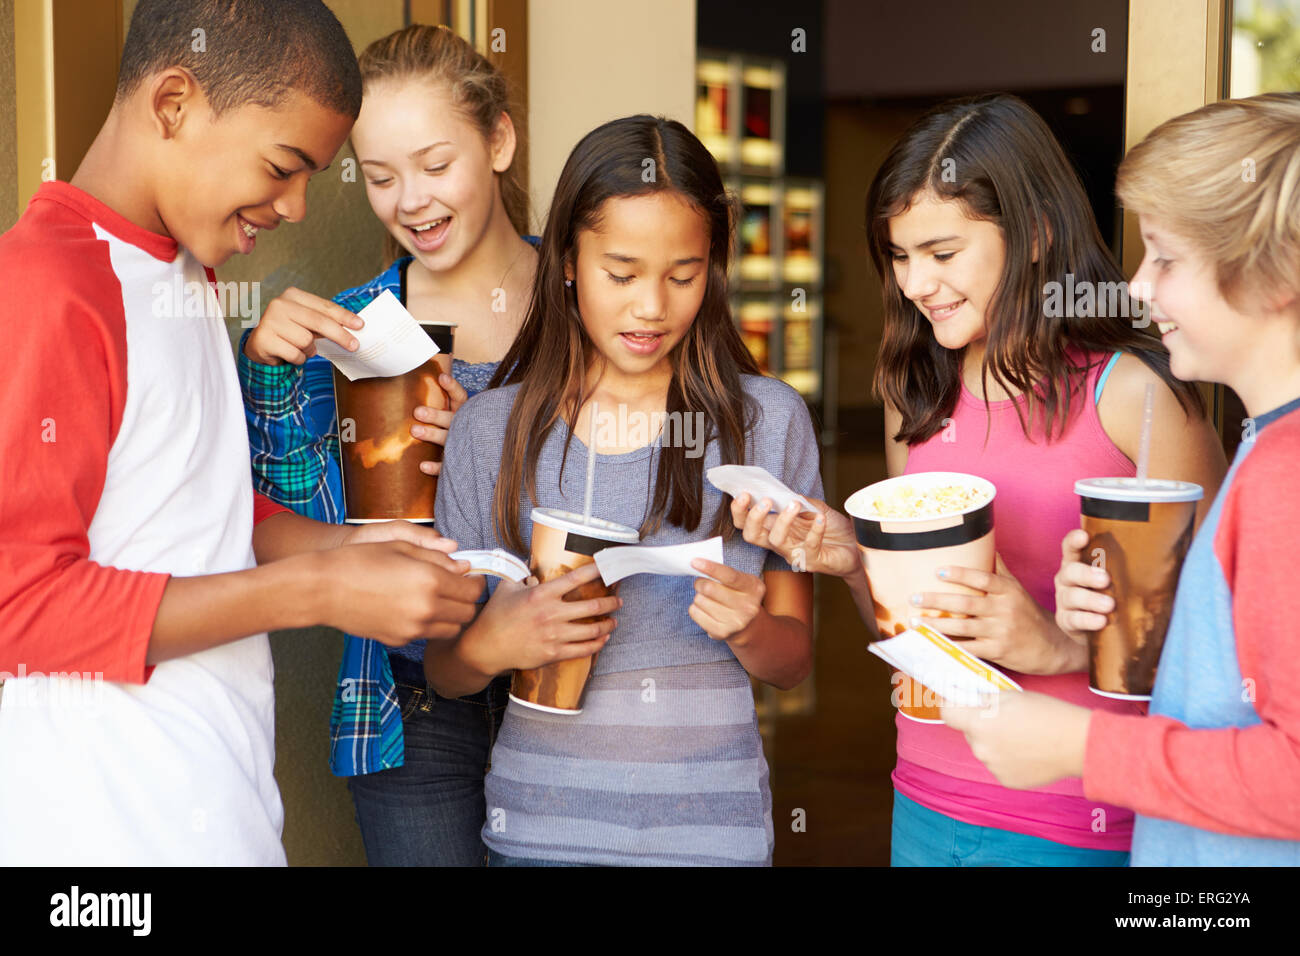 Group Of Children Standing Outside Cinema Together - Stock Image